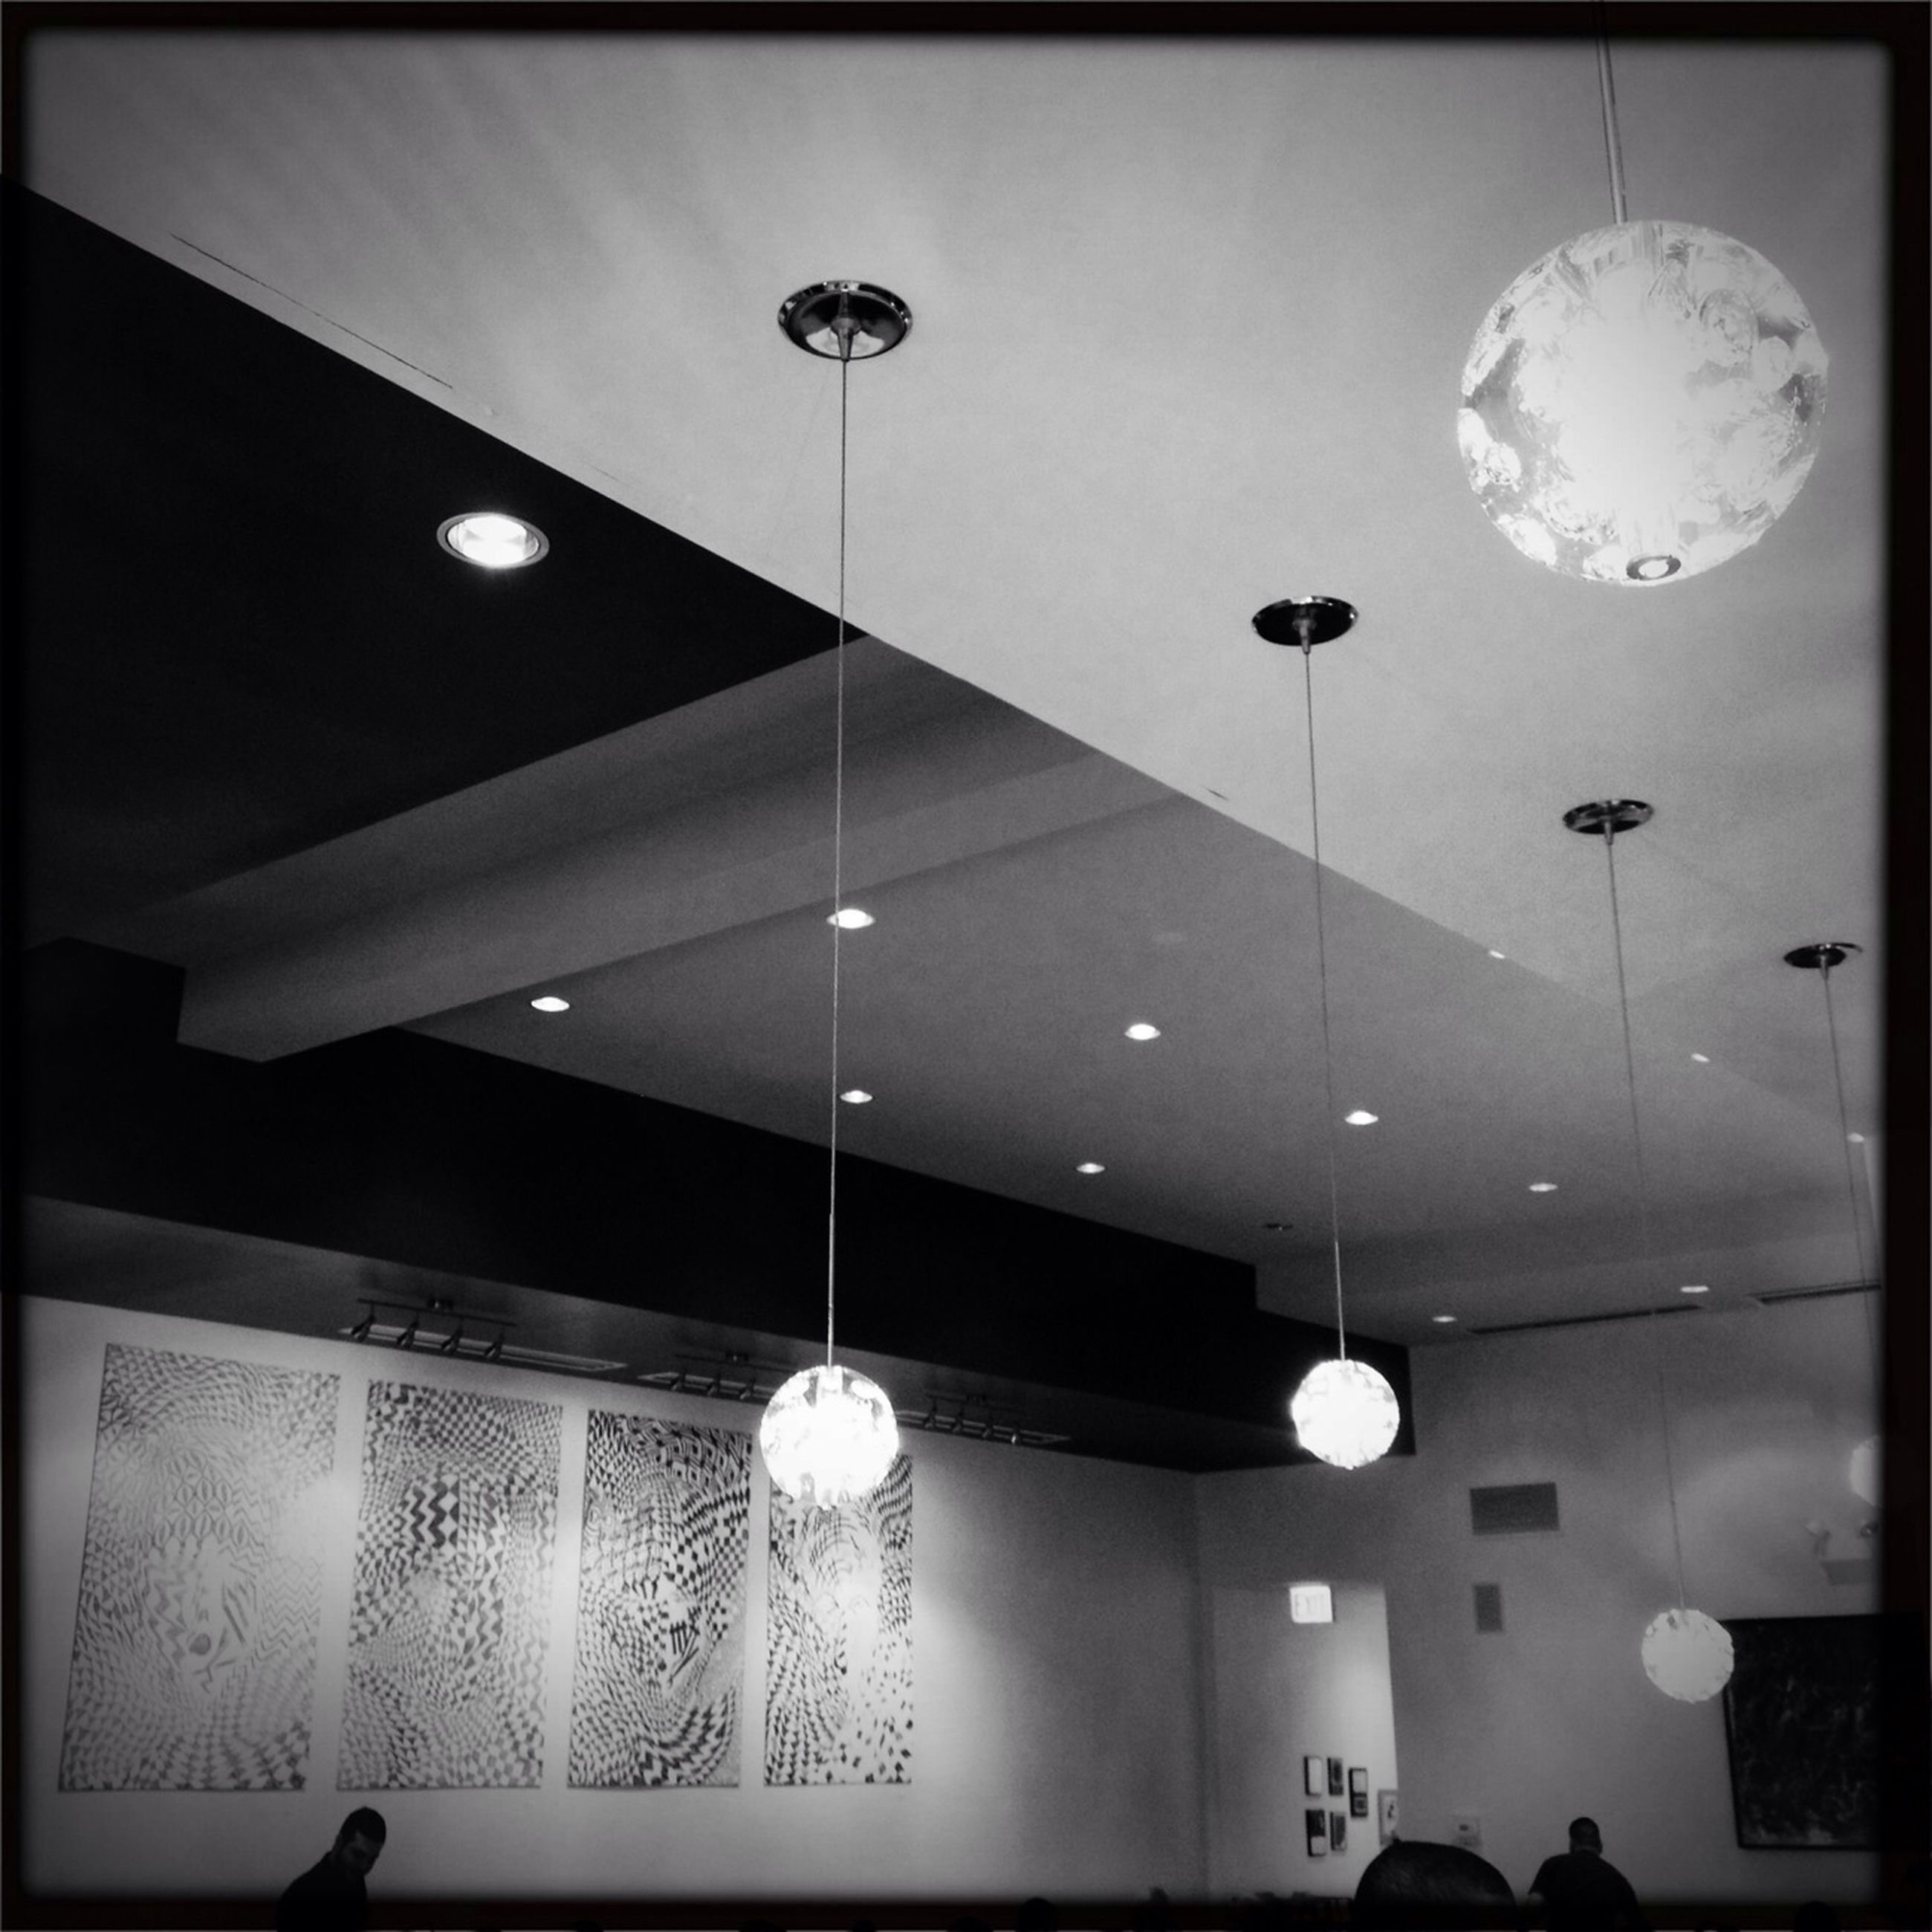 indoors, illuminated, lighting equipment, ceiling, hanging, electric lamp, electricity, electric light, chandelier, low angle view, decoration, light bulb, lamp, built structure, home interior, pendant light, light - natural phenomenon, architecture, night, in a row